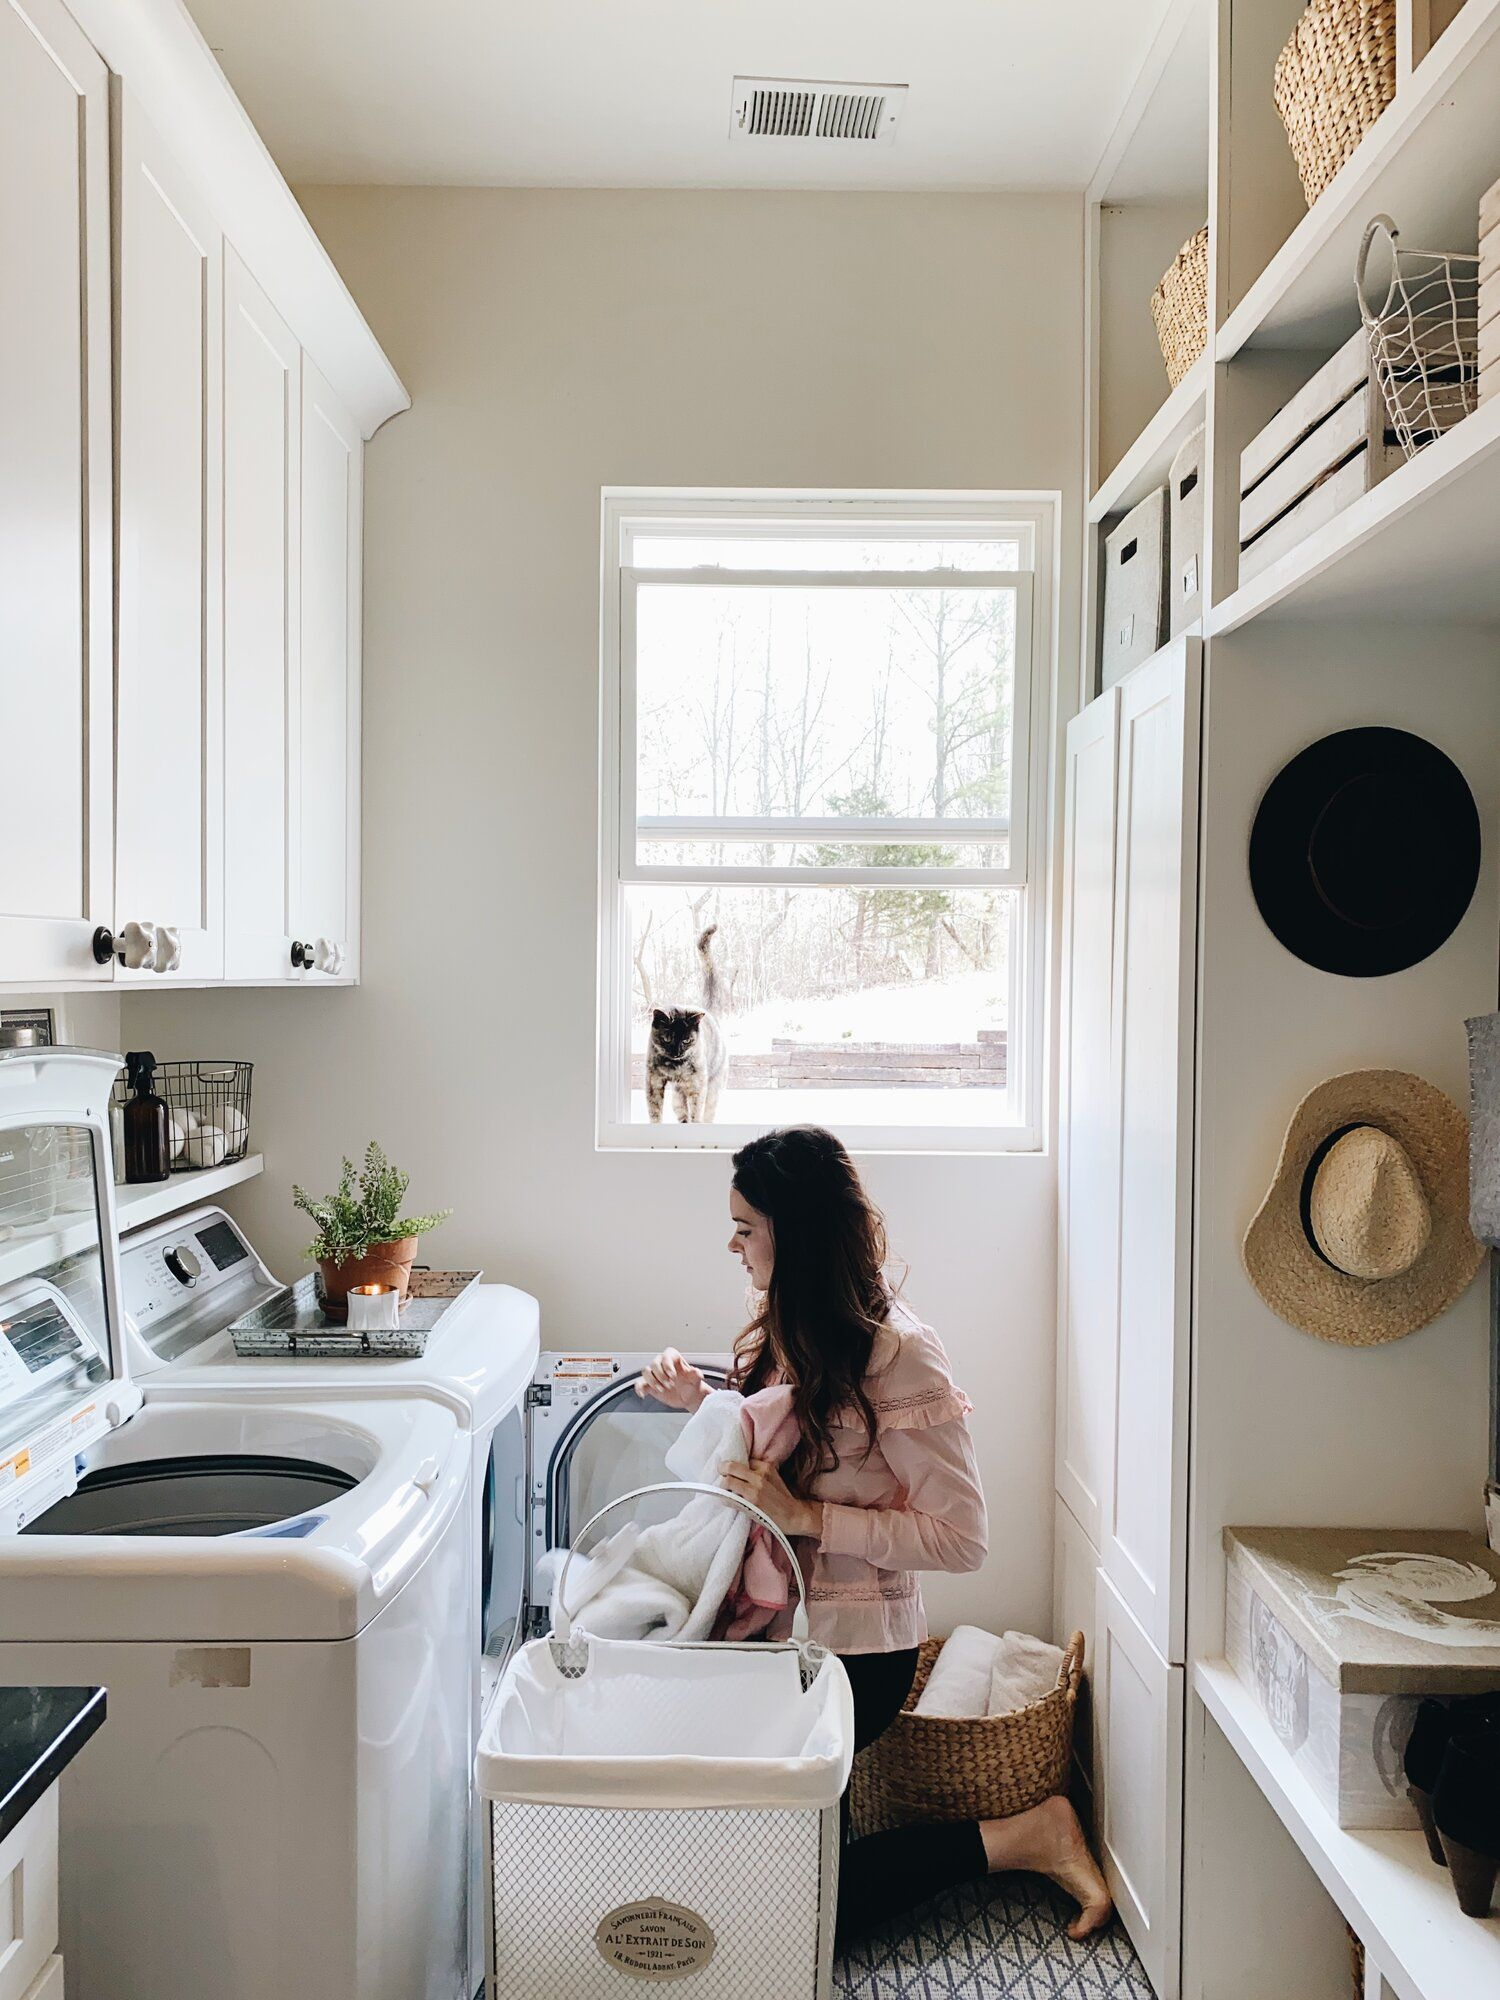 Spring Laundry Room Refresh In 2020 Home Appliances Home Room